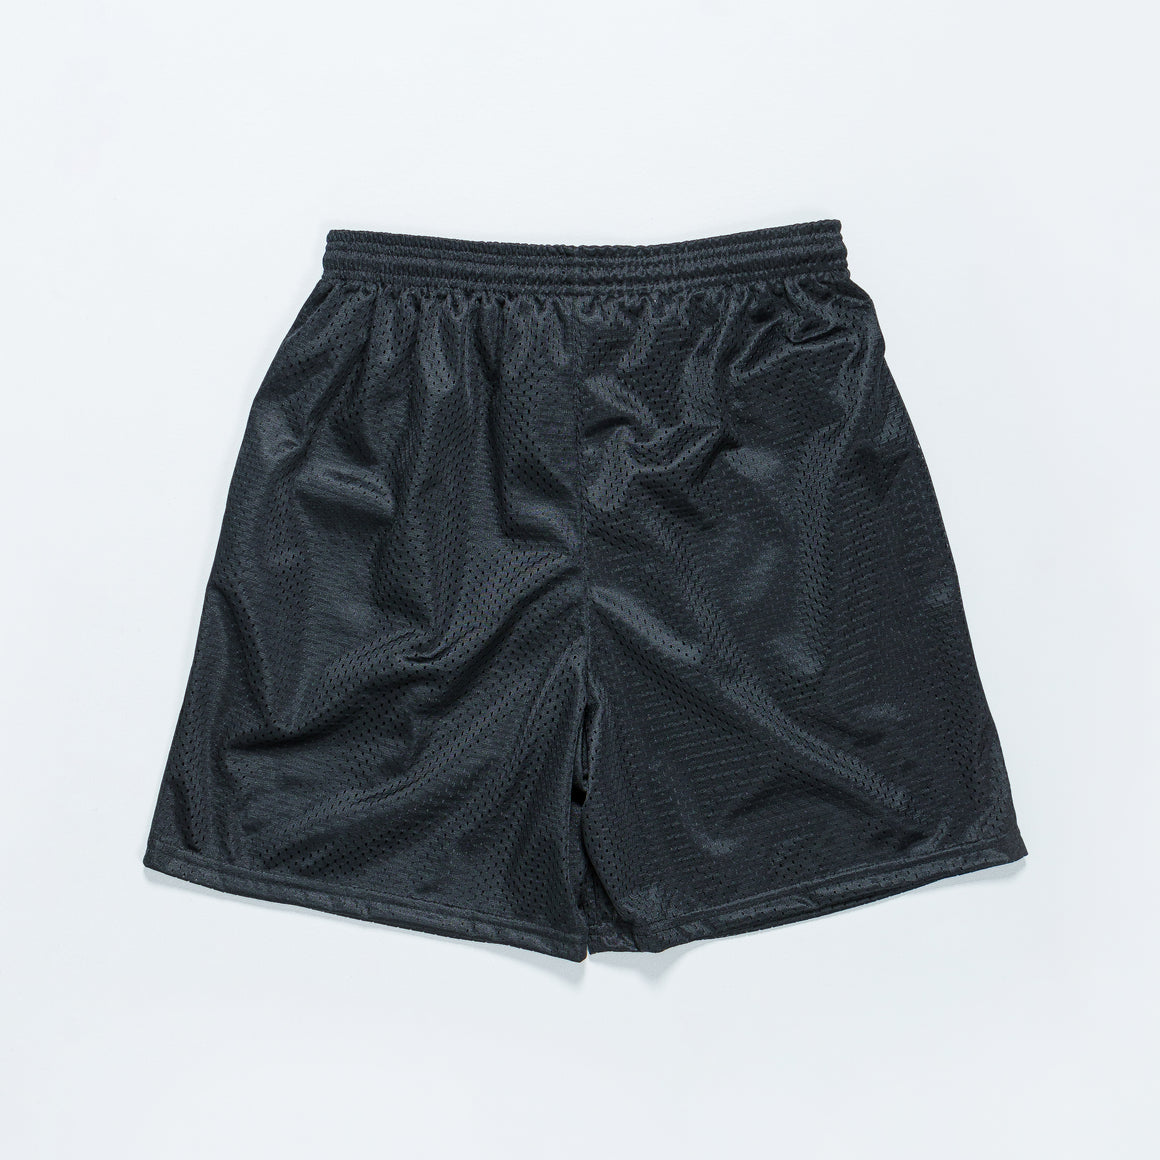 Up There - Baller Shorts - Black - Up There